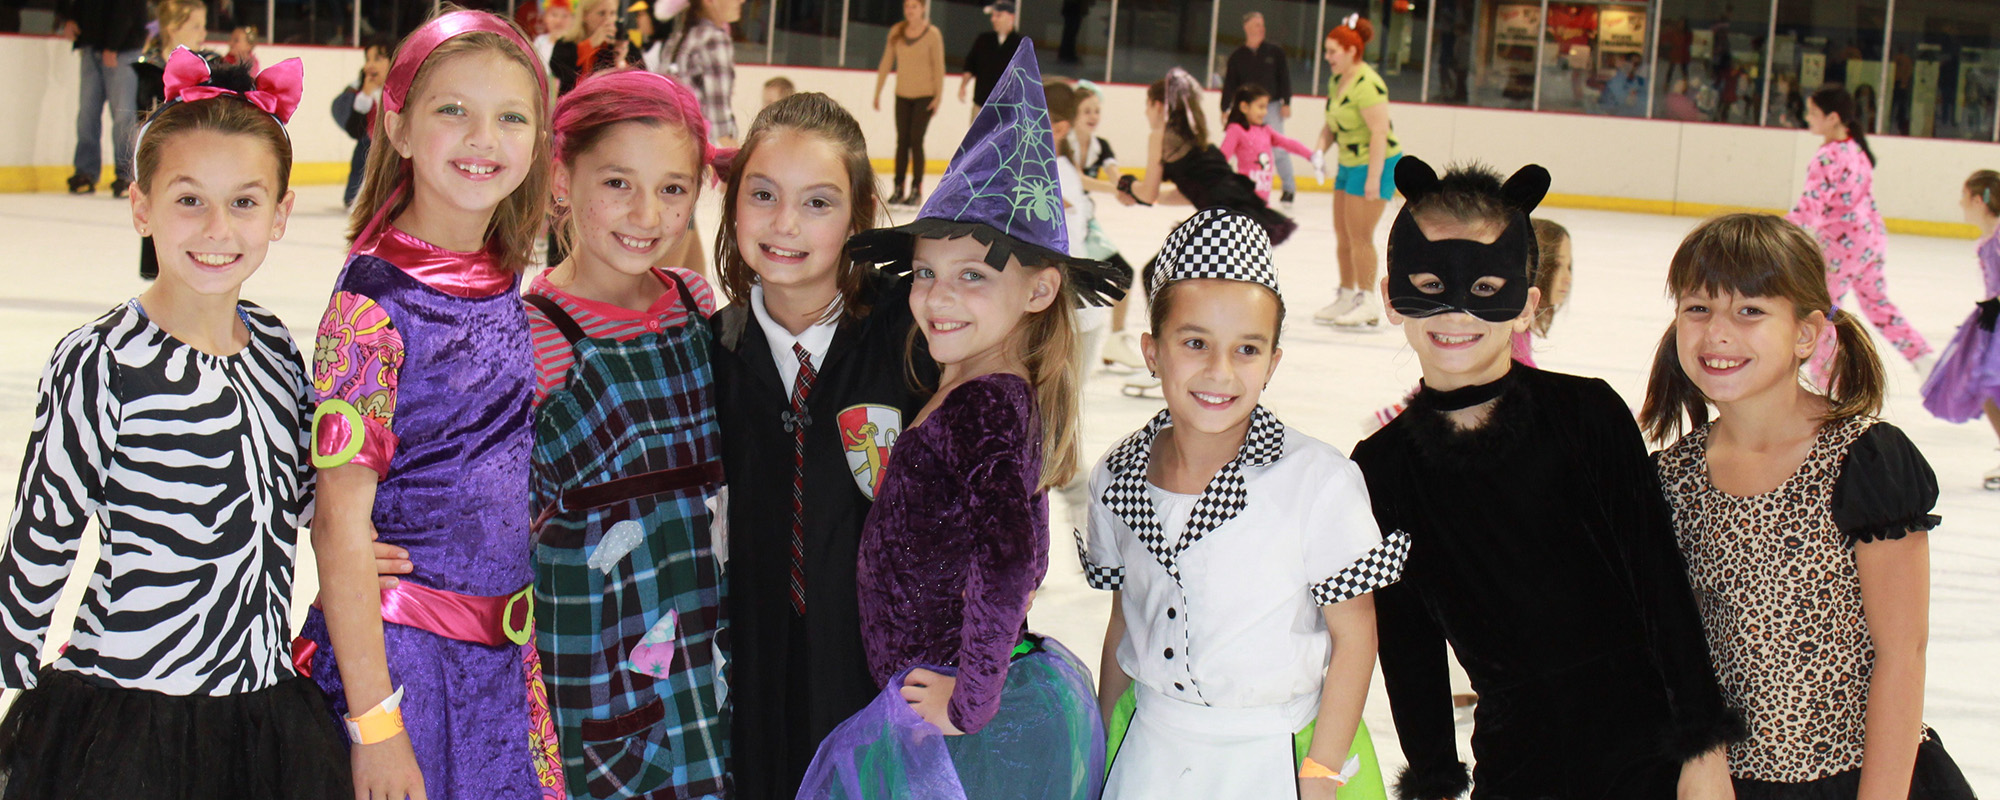 Get out on the ice for Kooky Spooky Skate!